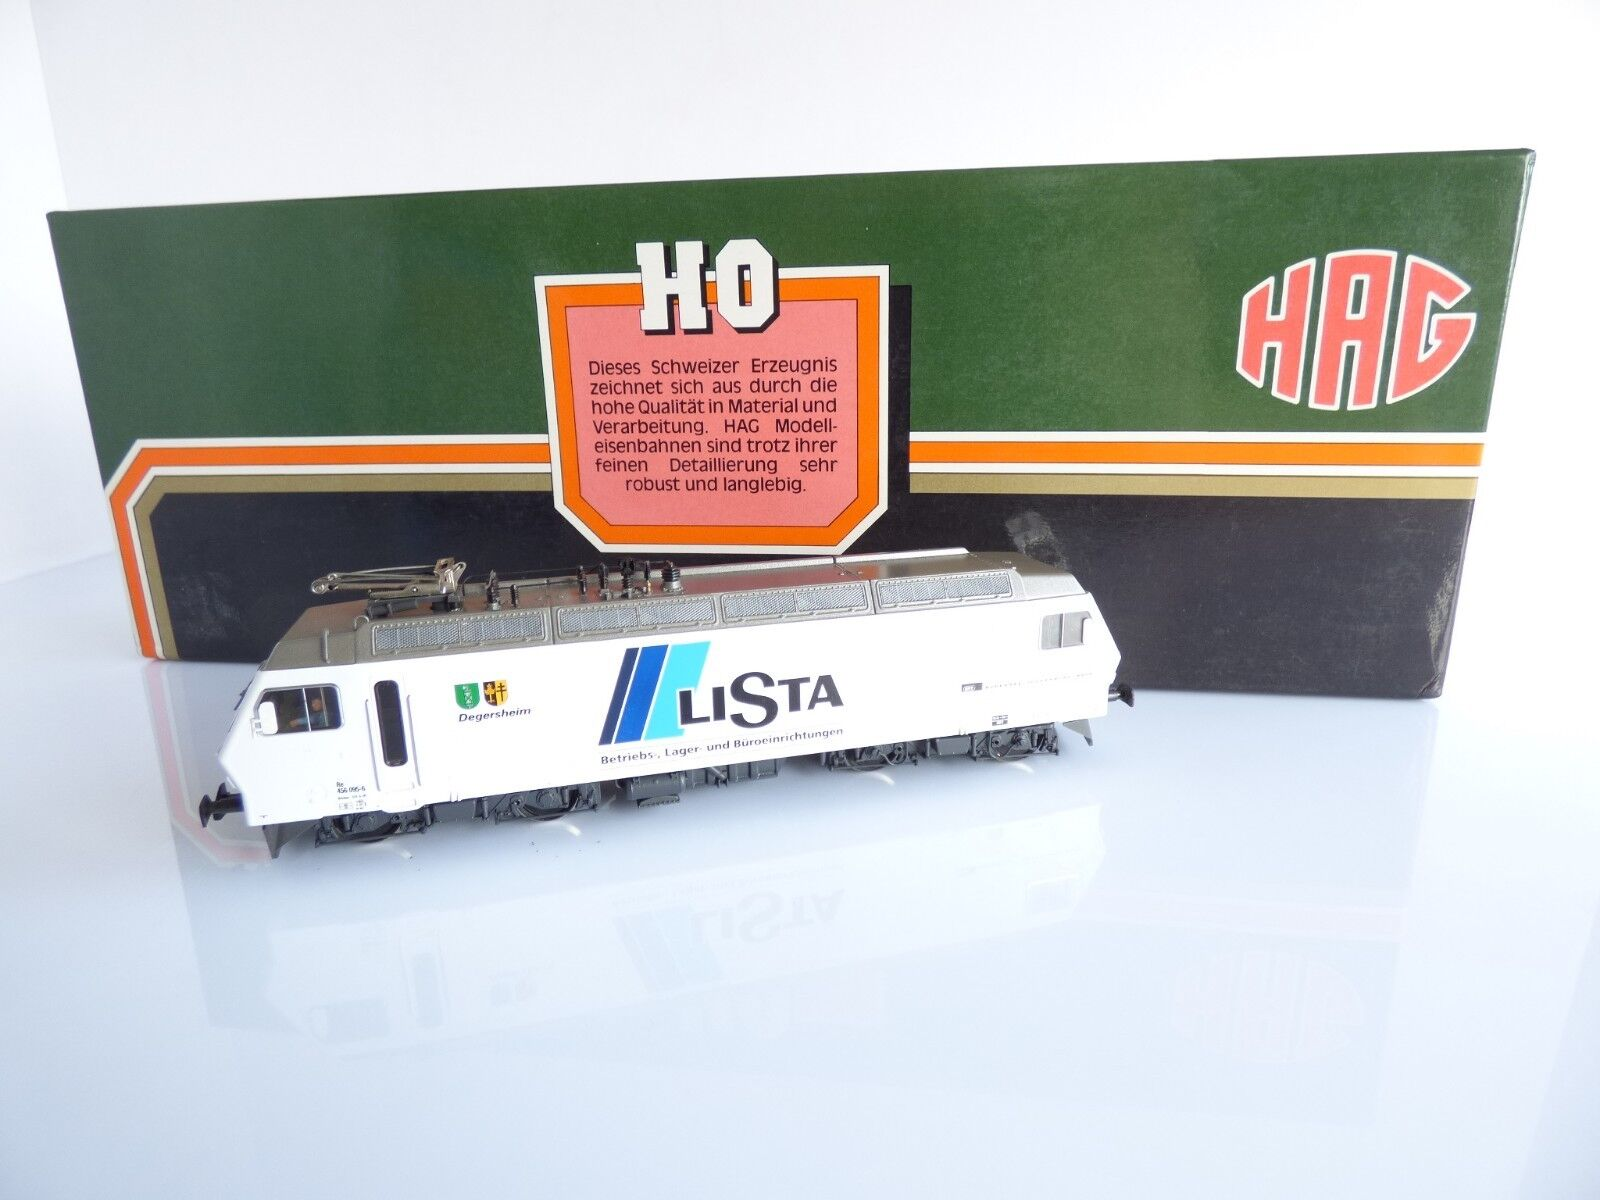 HAG 187 LOCOMOTIVE ELECTRIQUE Re 456 095-6 LISTA